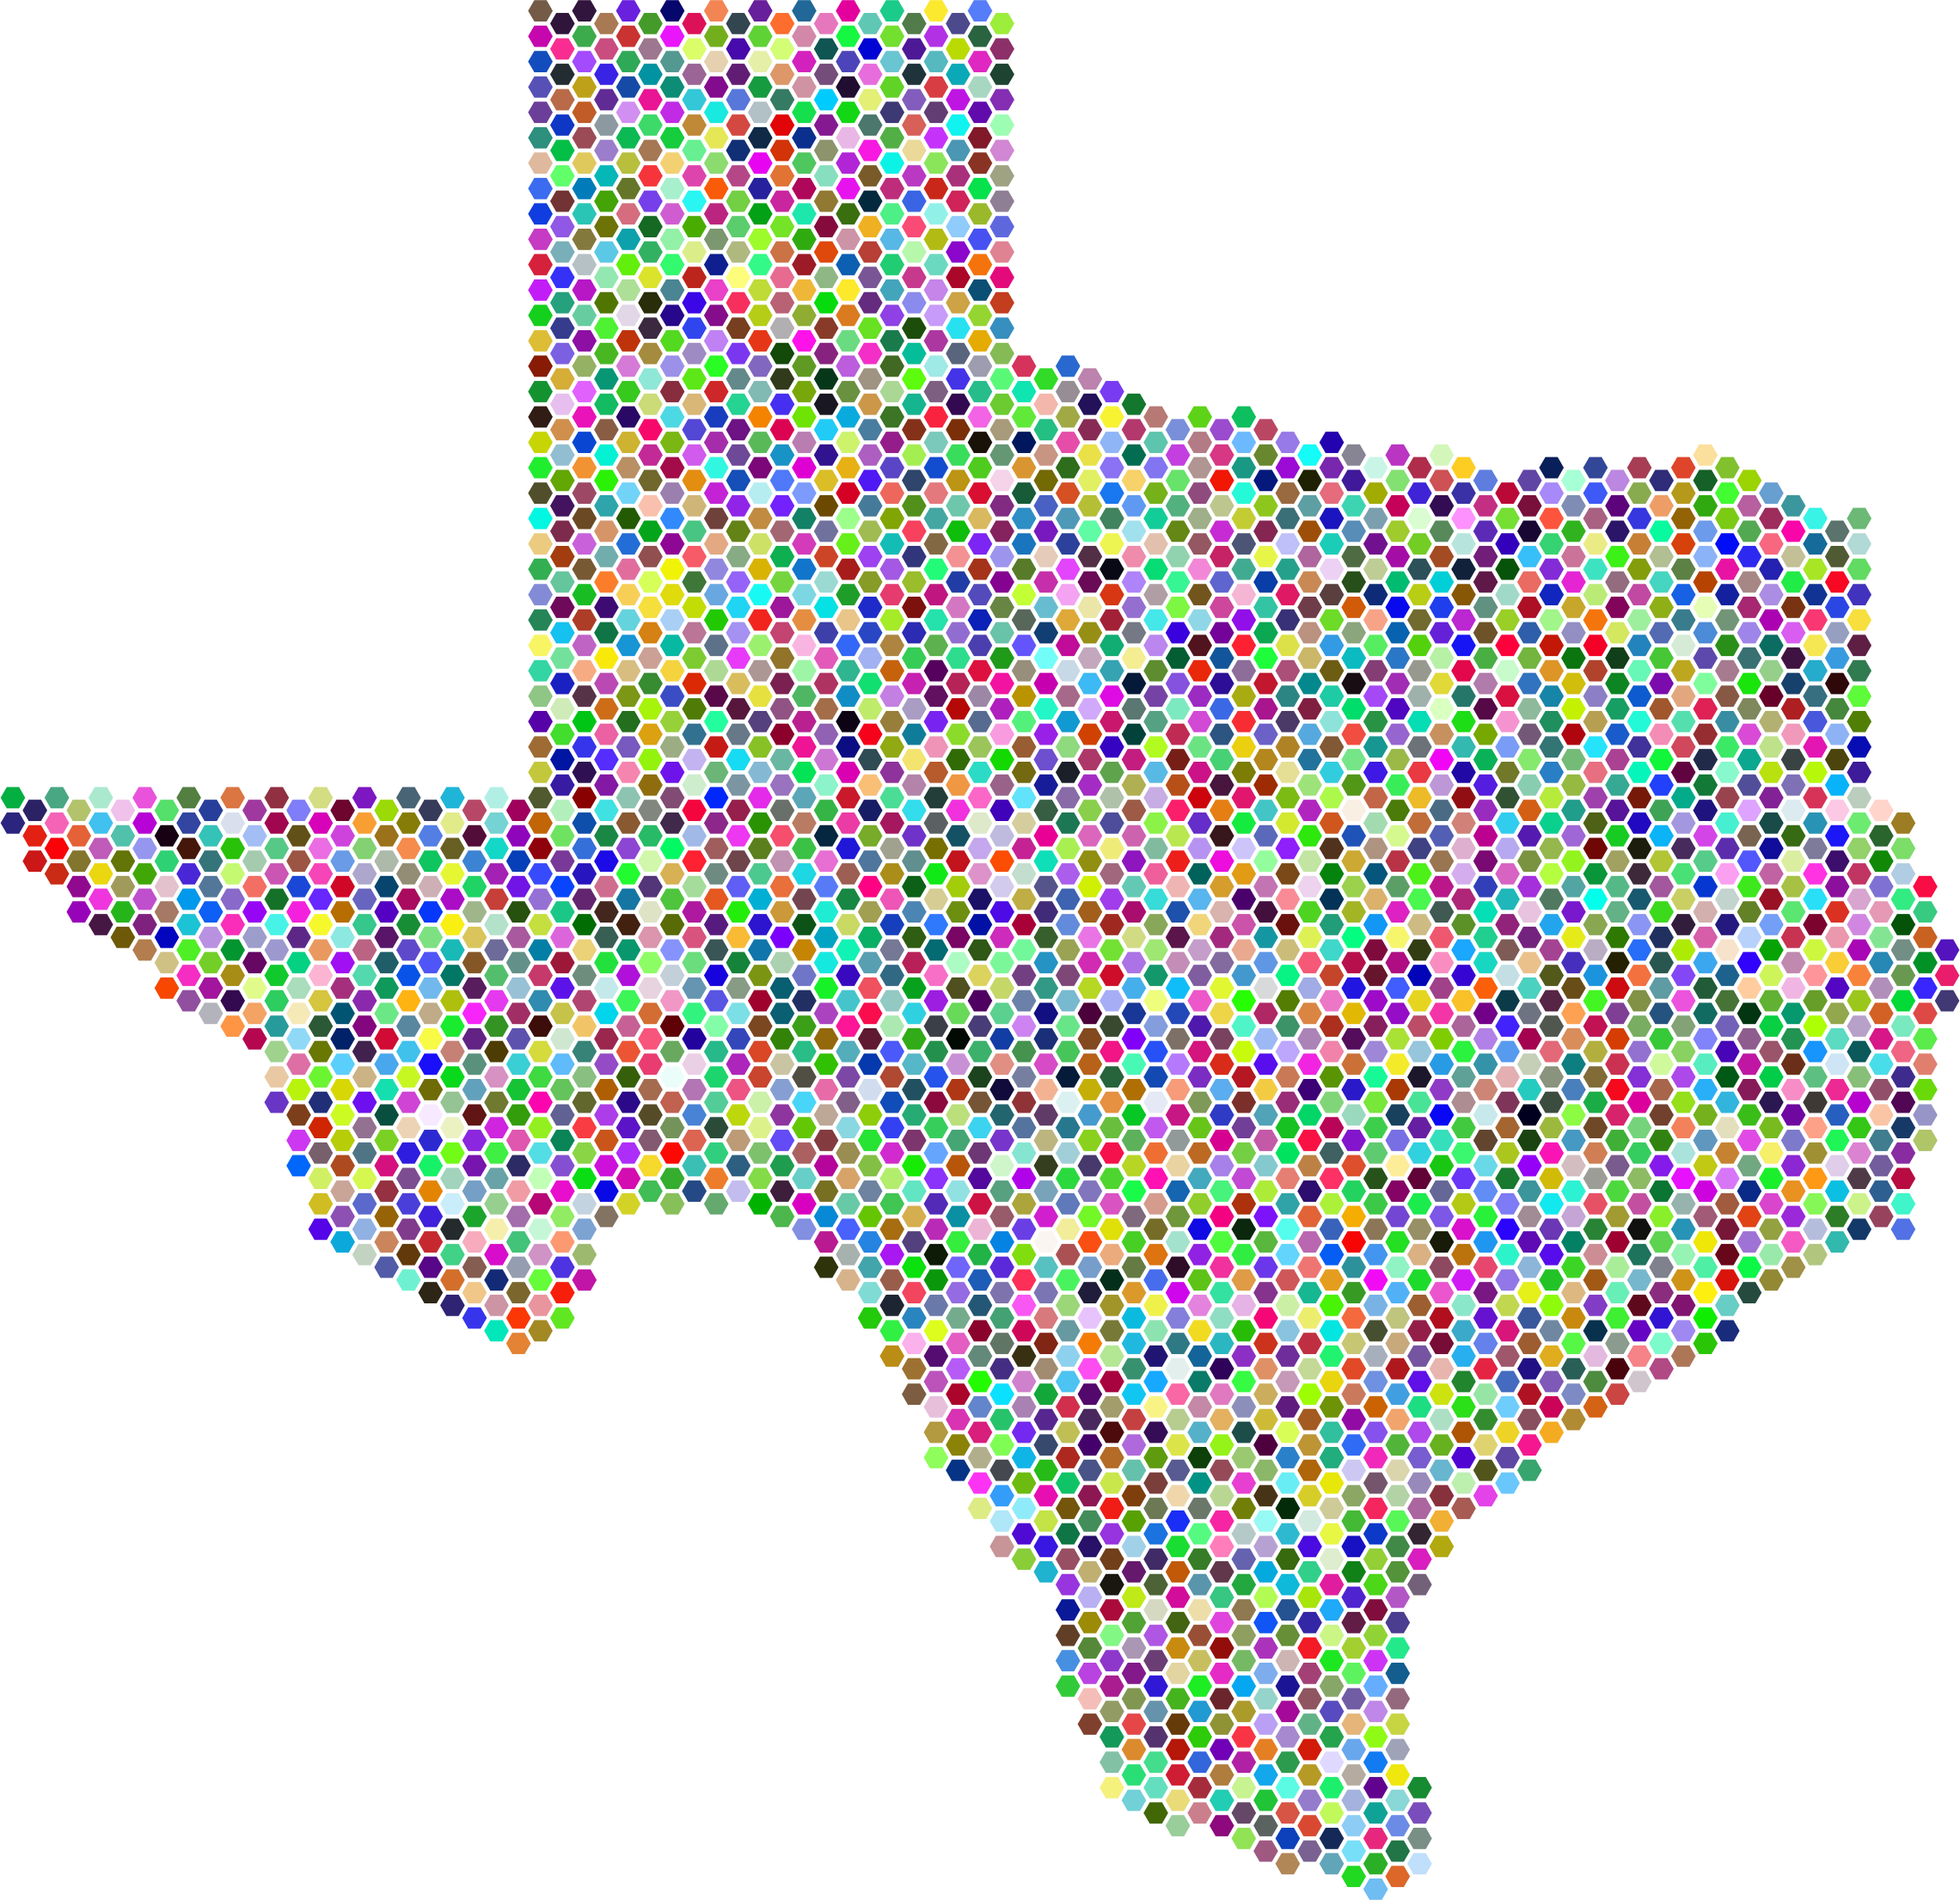 Prismatic Texas Hexagonal Mosaic by GDJ